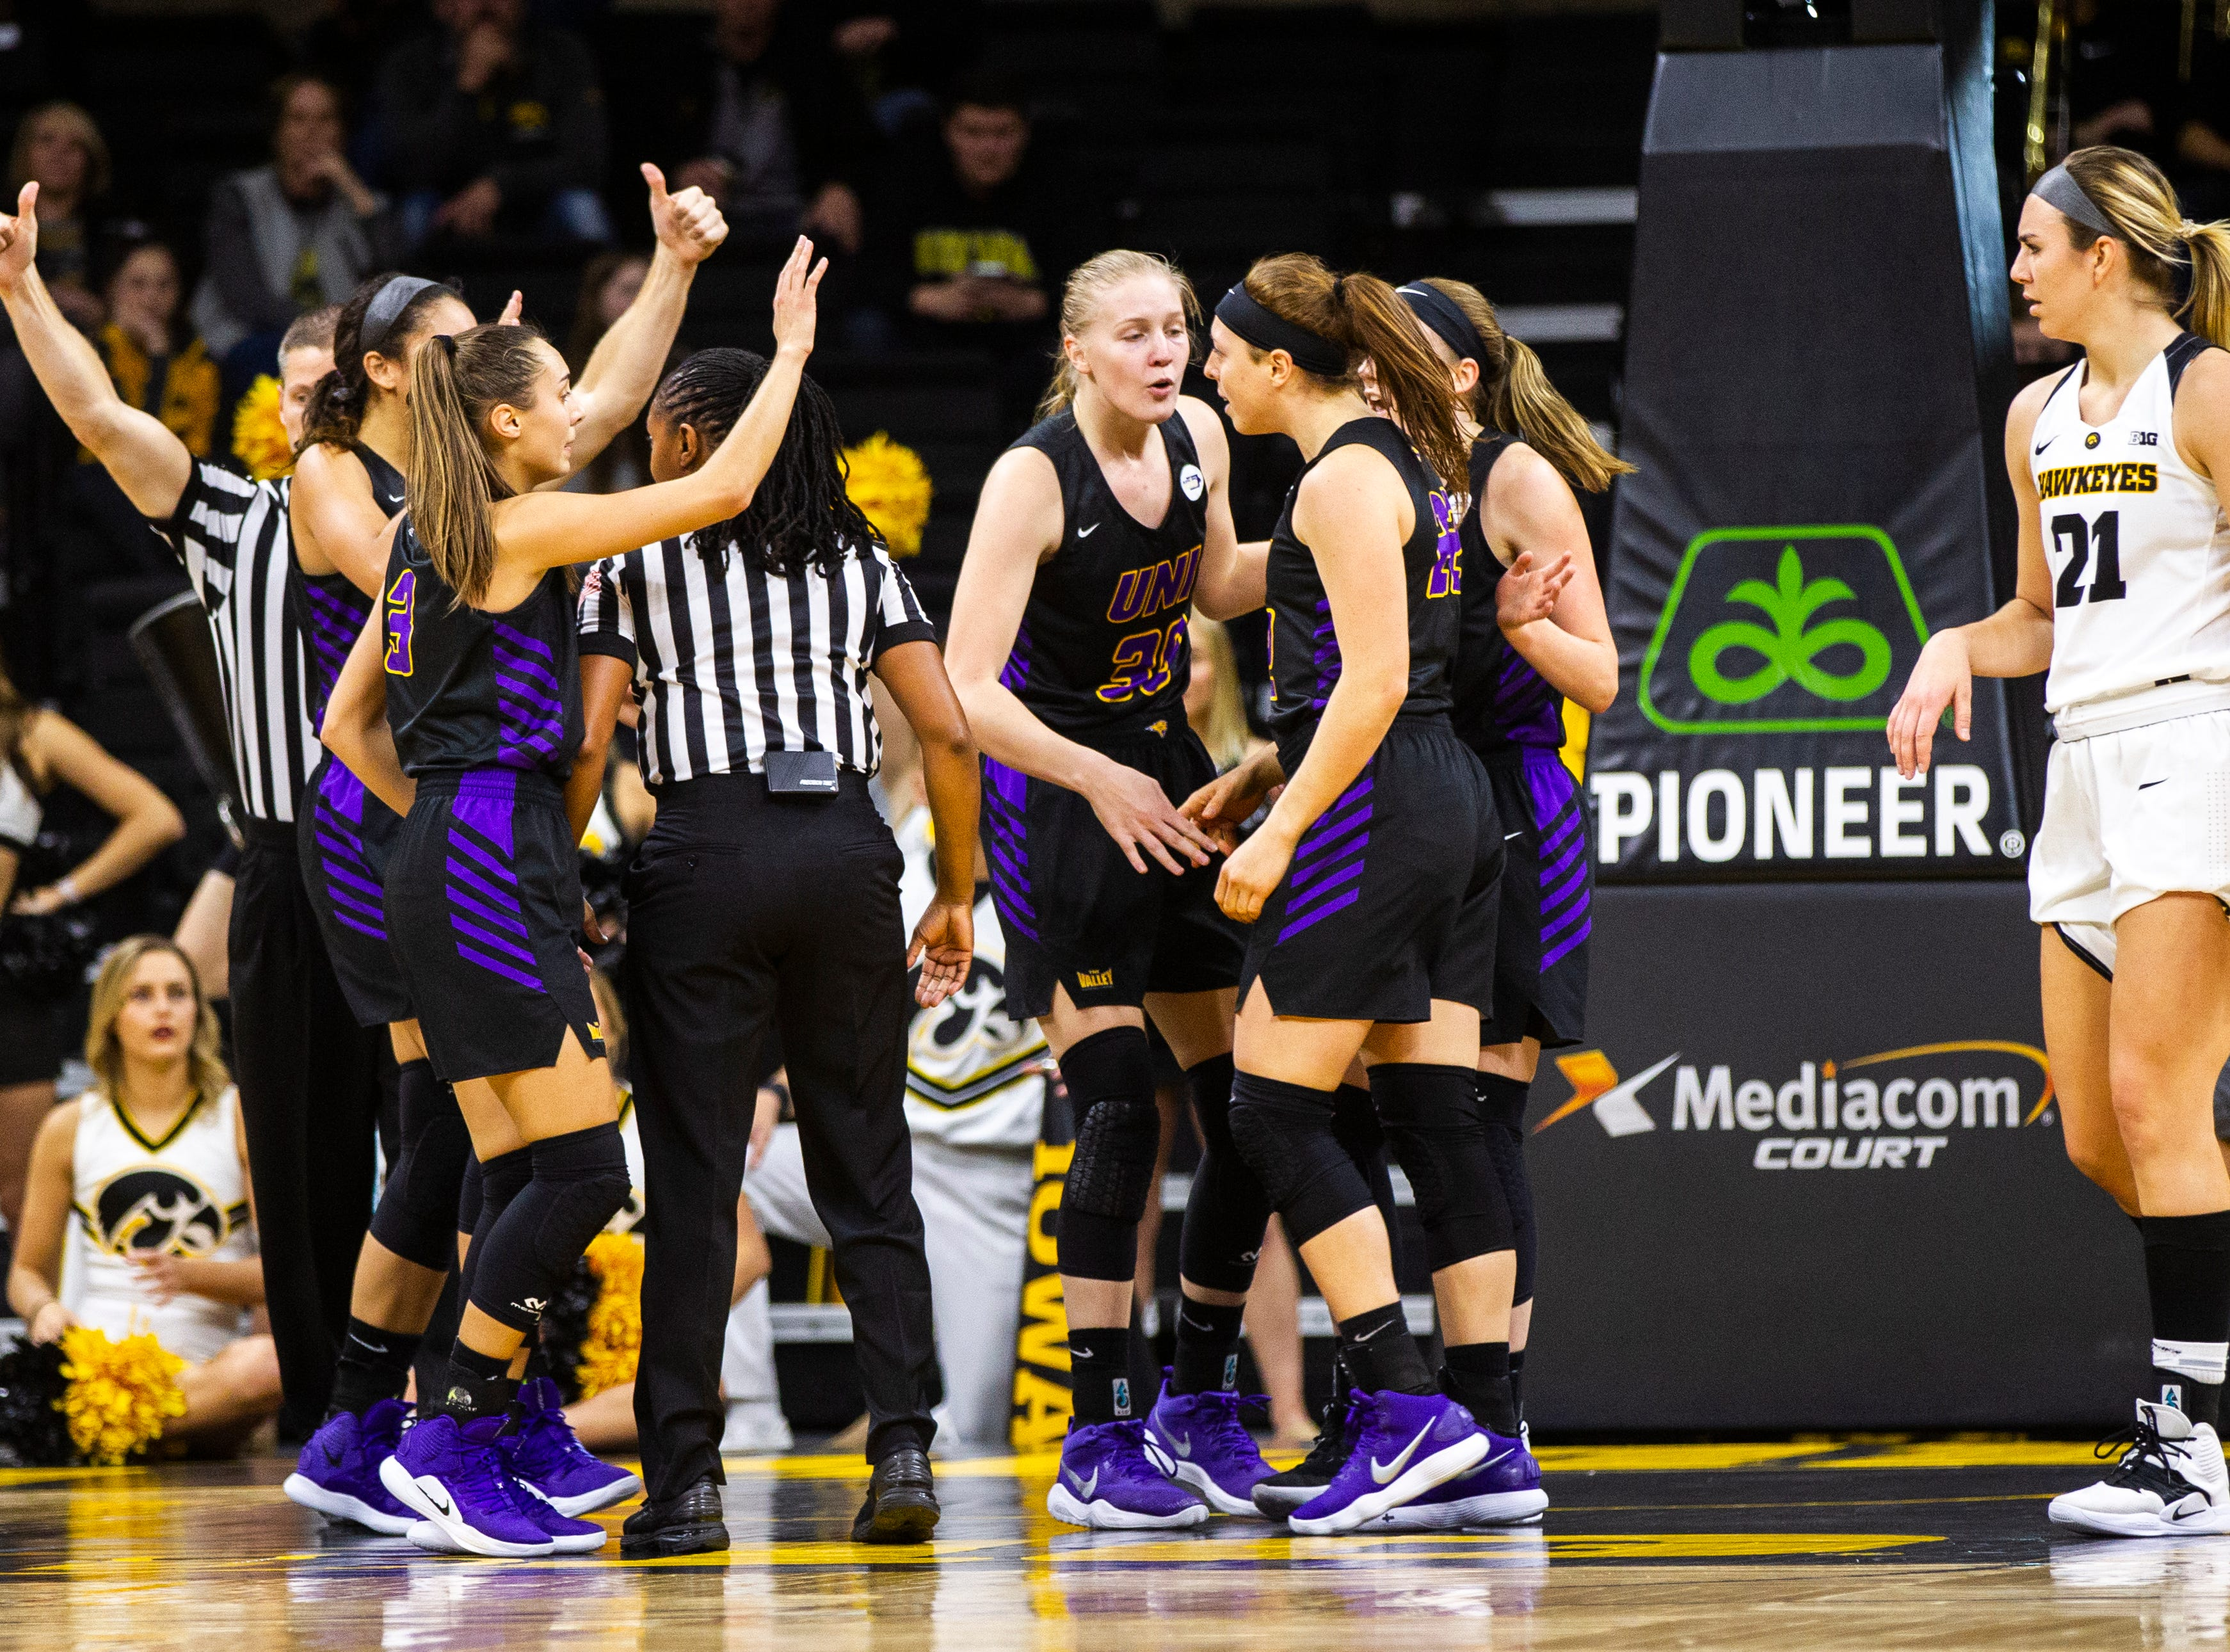 Northern Iowa guard Rose Simon-Ressler (22) is embraced by teammates after winning possession during a NCAA women's basketball game on Sunday, Dec. 16, 2018, at Carver-Hawkeye Arena in Iowa City.